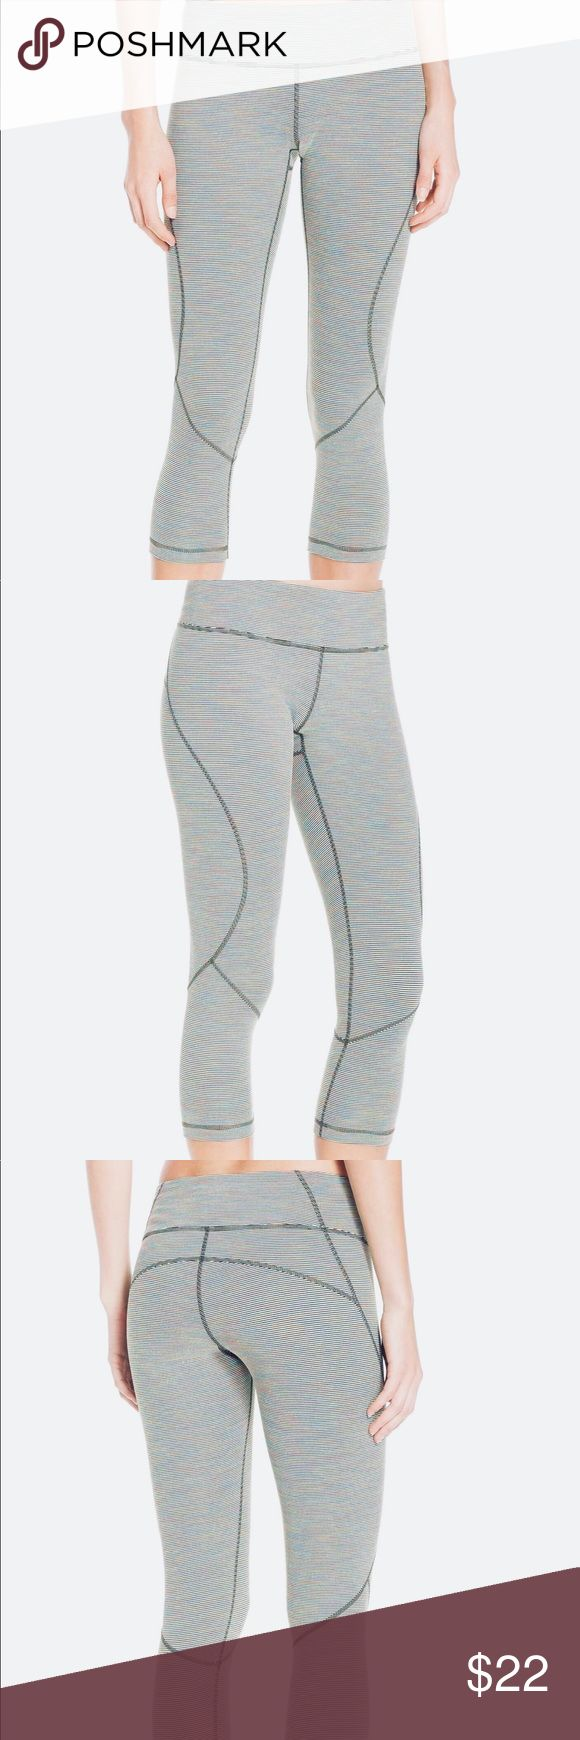 "ZELLA Live In Crop Leggings ZELLA Live In Crop Leggings (Medium)  Color: Black & White Stripes  Details & Care These lean, crop pants are ideal for working out or wearing out, cut from a stretchy, moisture-wicking knit and sewn with flatlock seaming for a comfortable, chafe-free fit.  Size Details: - medium - Runs small - M=8-10  Info: 20 1/2"" inseam 10"" leg opening 9"" front rise 13"" back rise   Other Info: Polyester/spandex. Machine wash cold, tumble dry low. Zella Pants Ankle & Cropped"